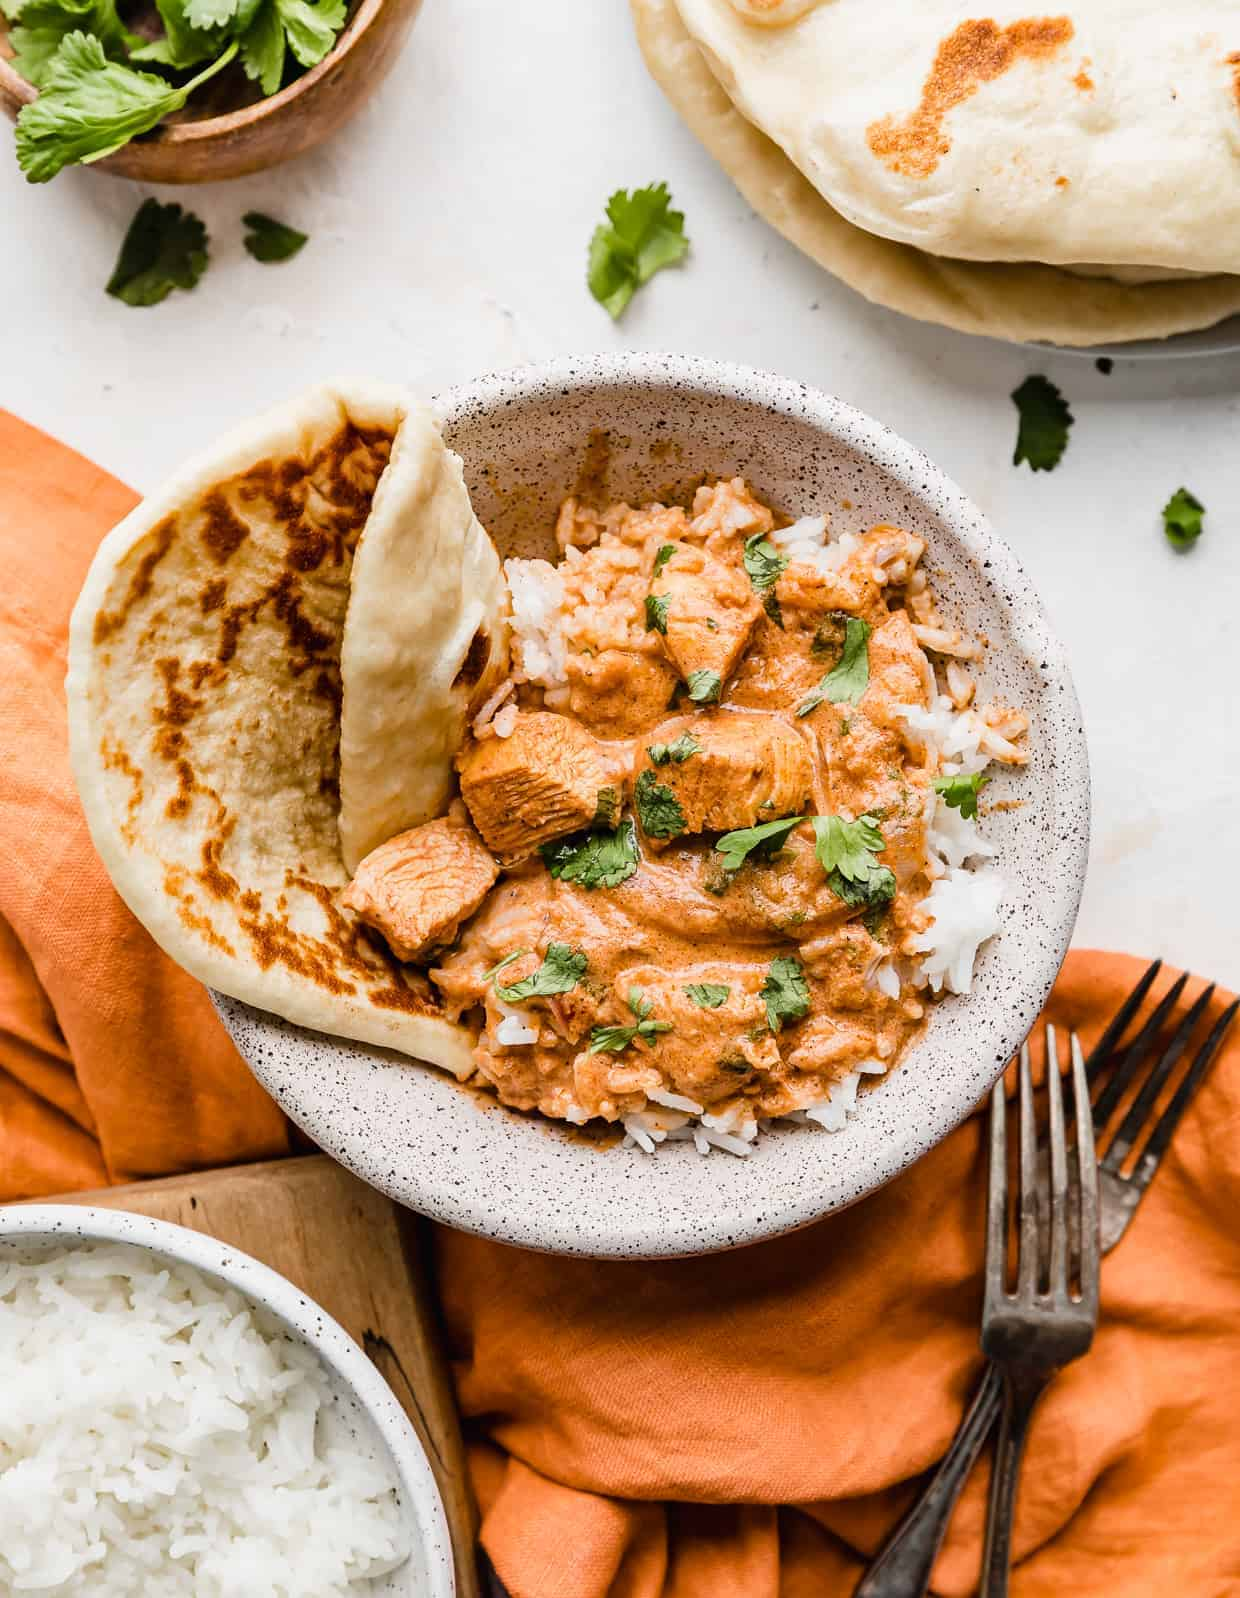 A bowl with Indian Butter Chicken in it, with a side of naan bread and rice.